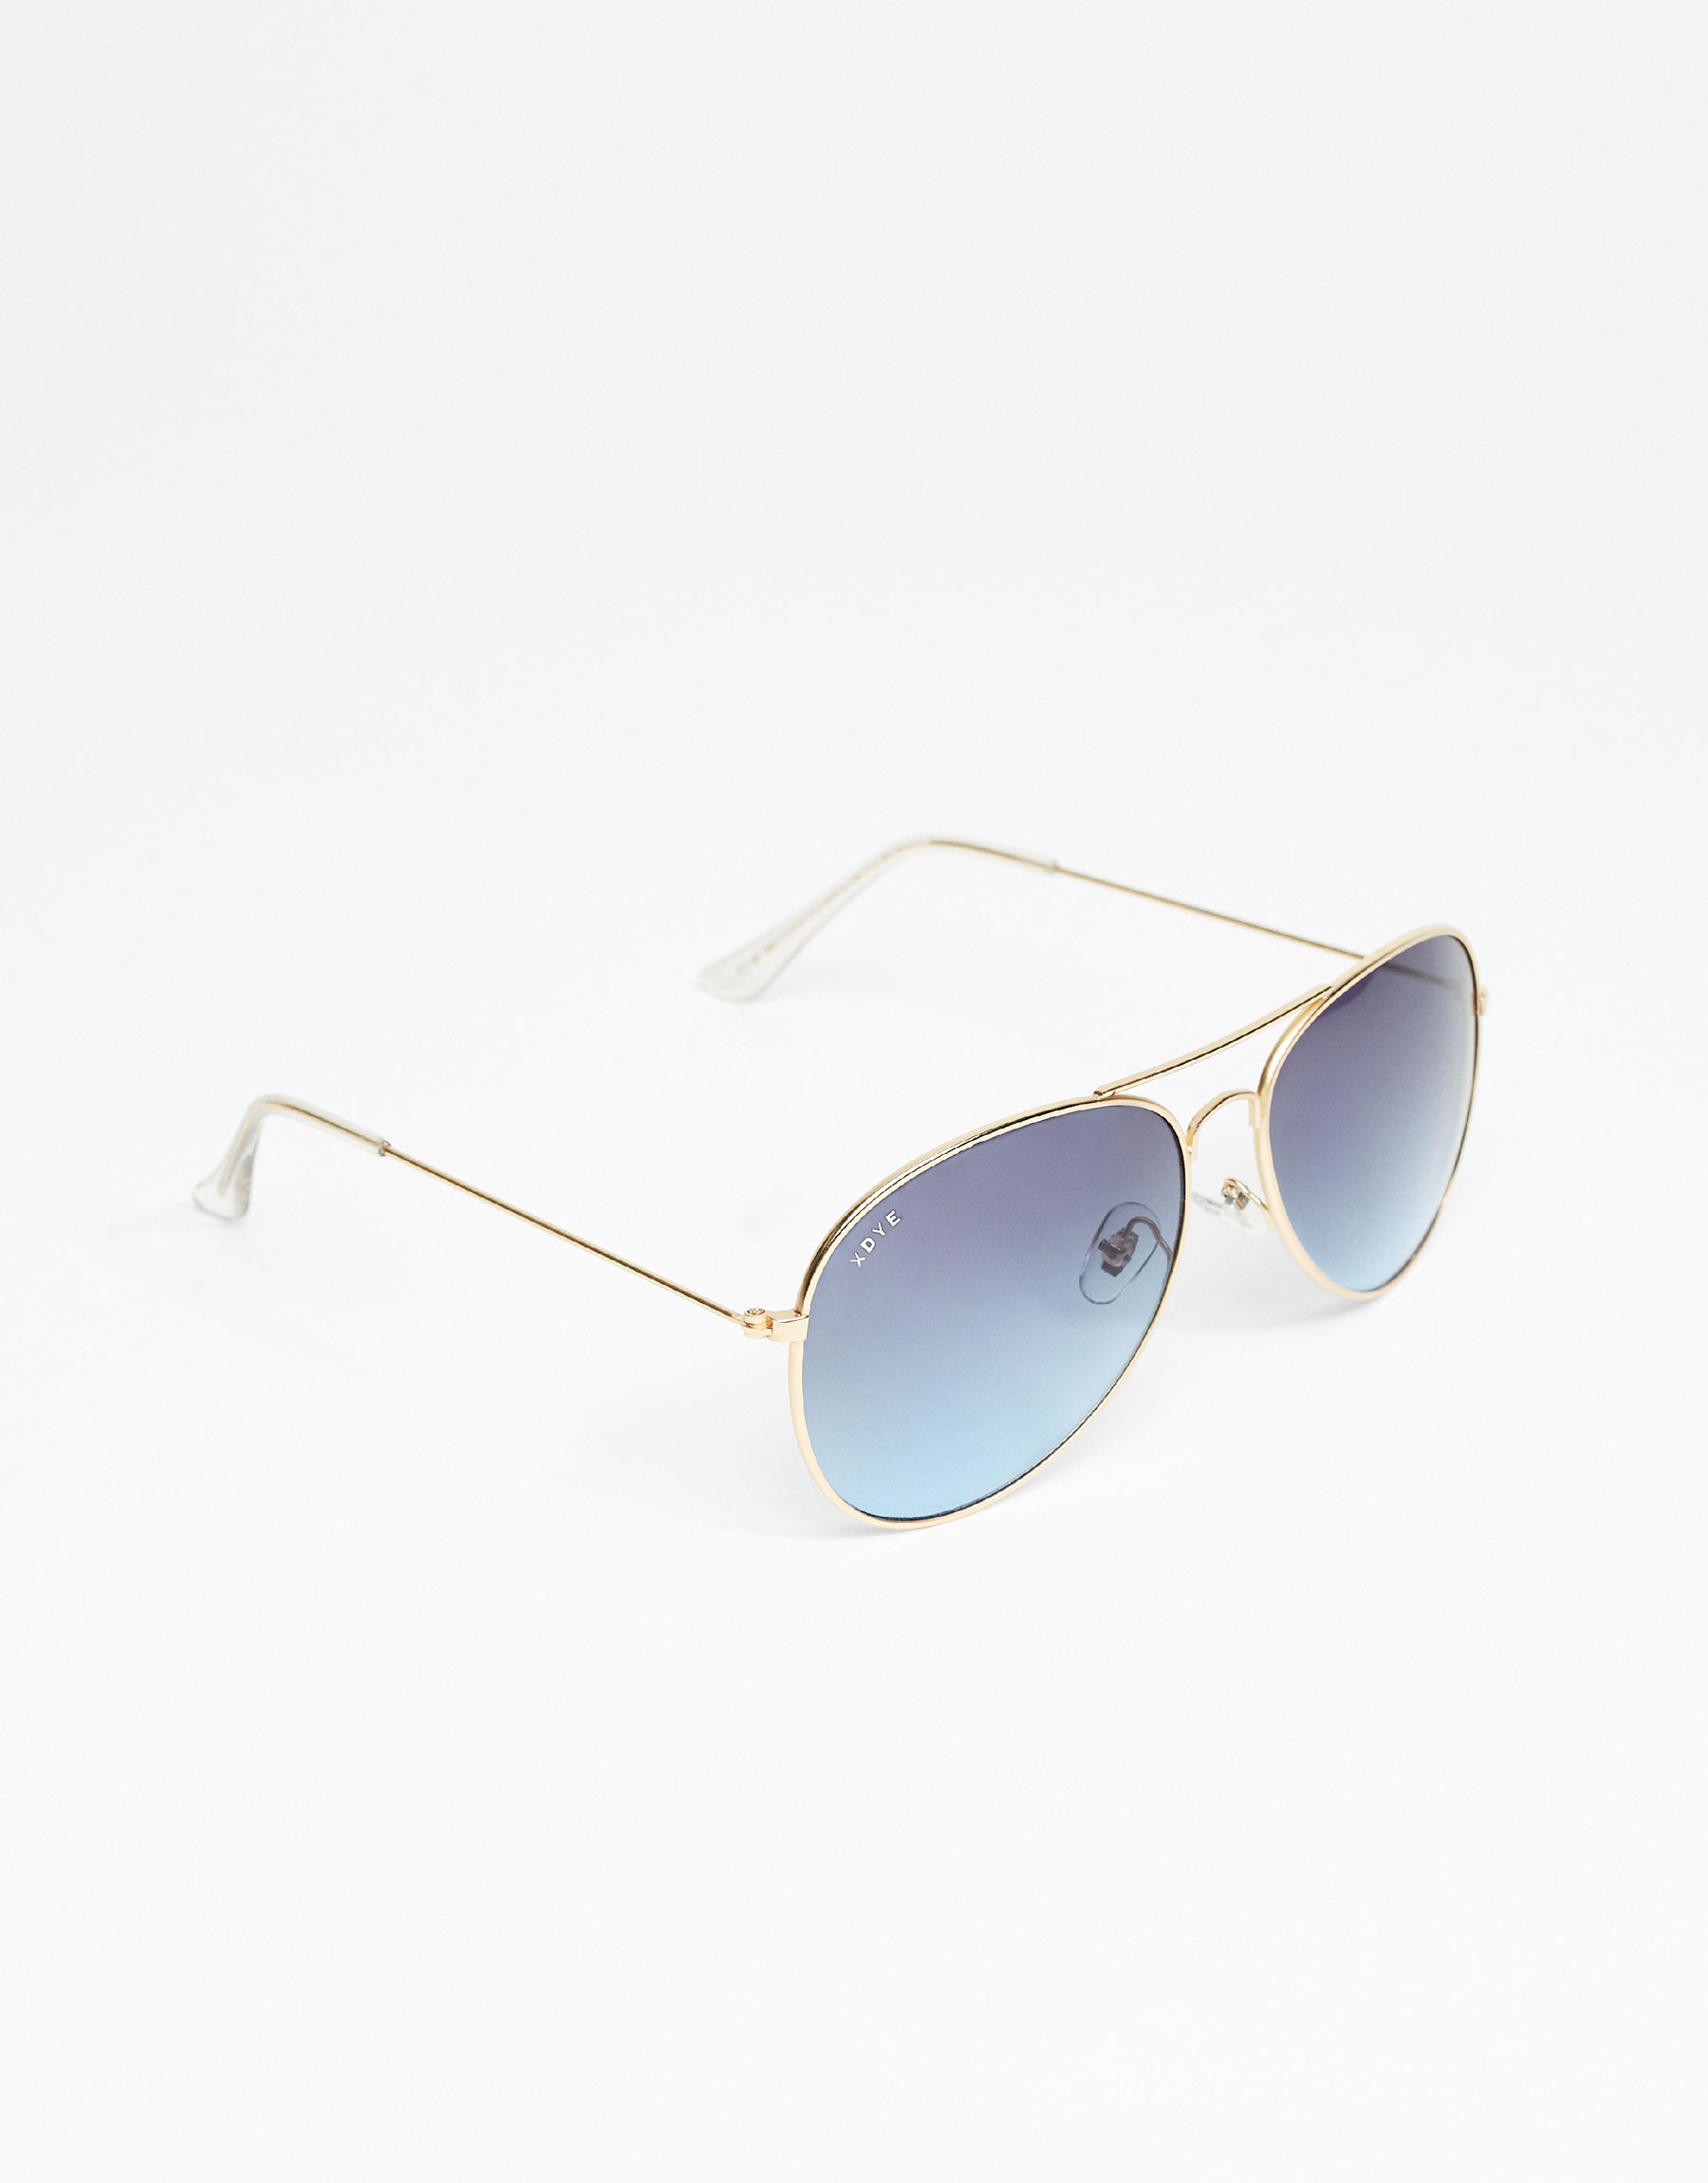 XDYE Sunglasses - Classic Airplane Blue